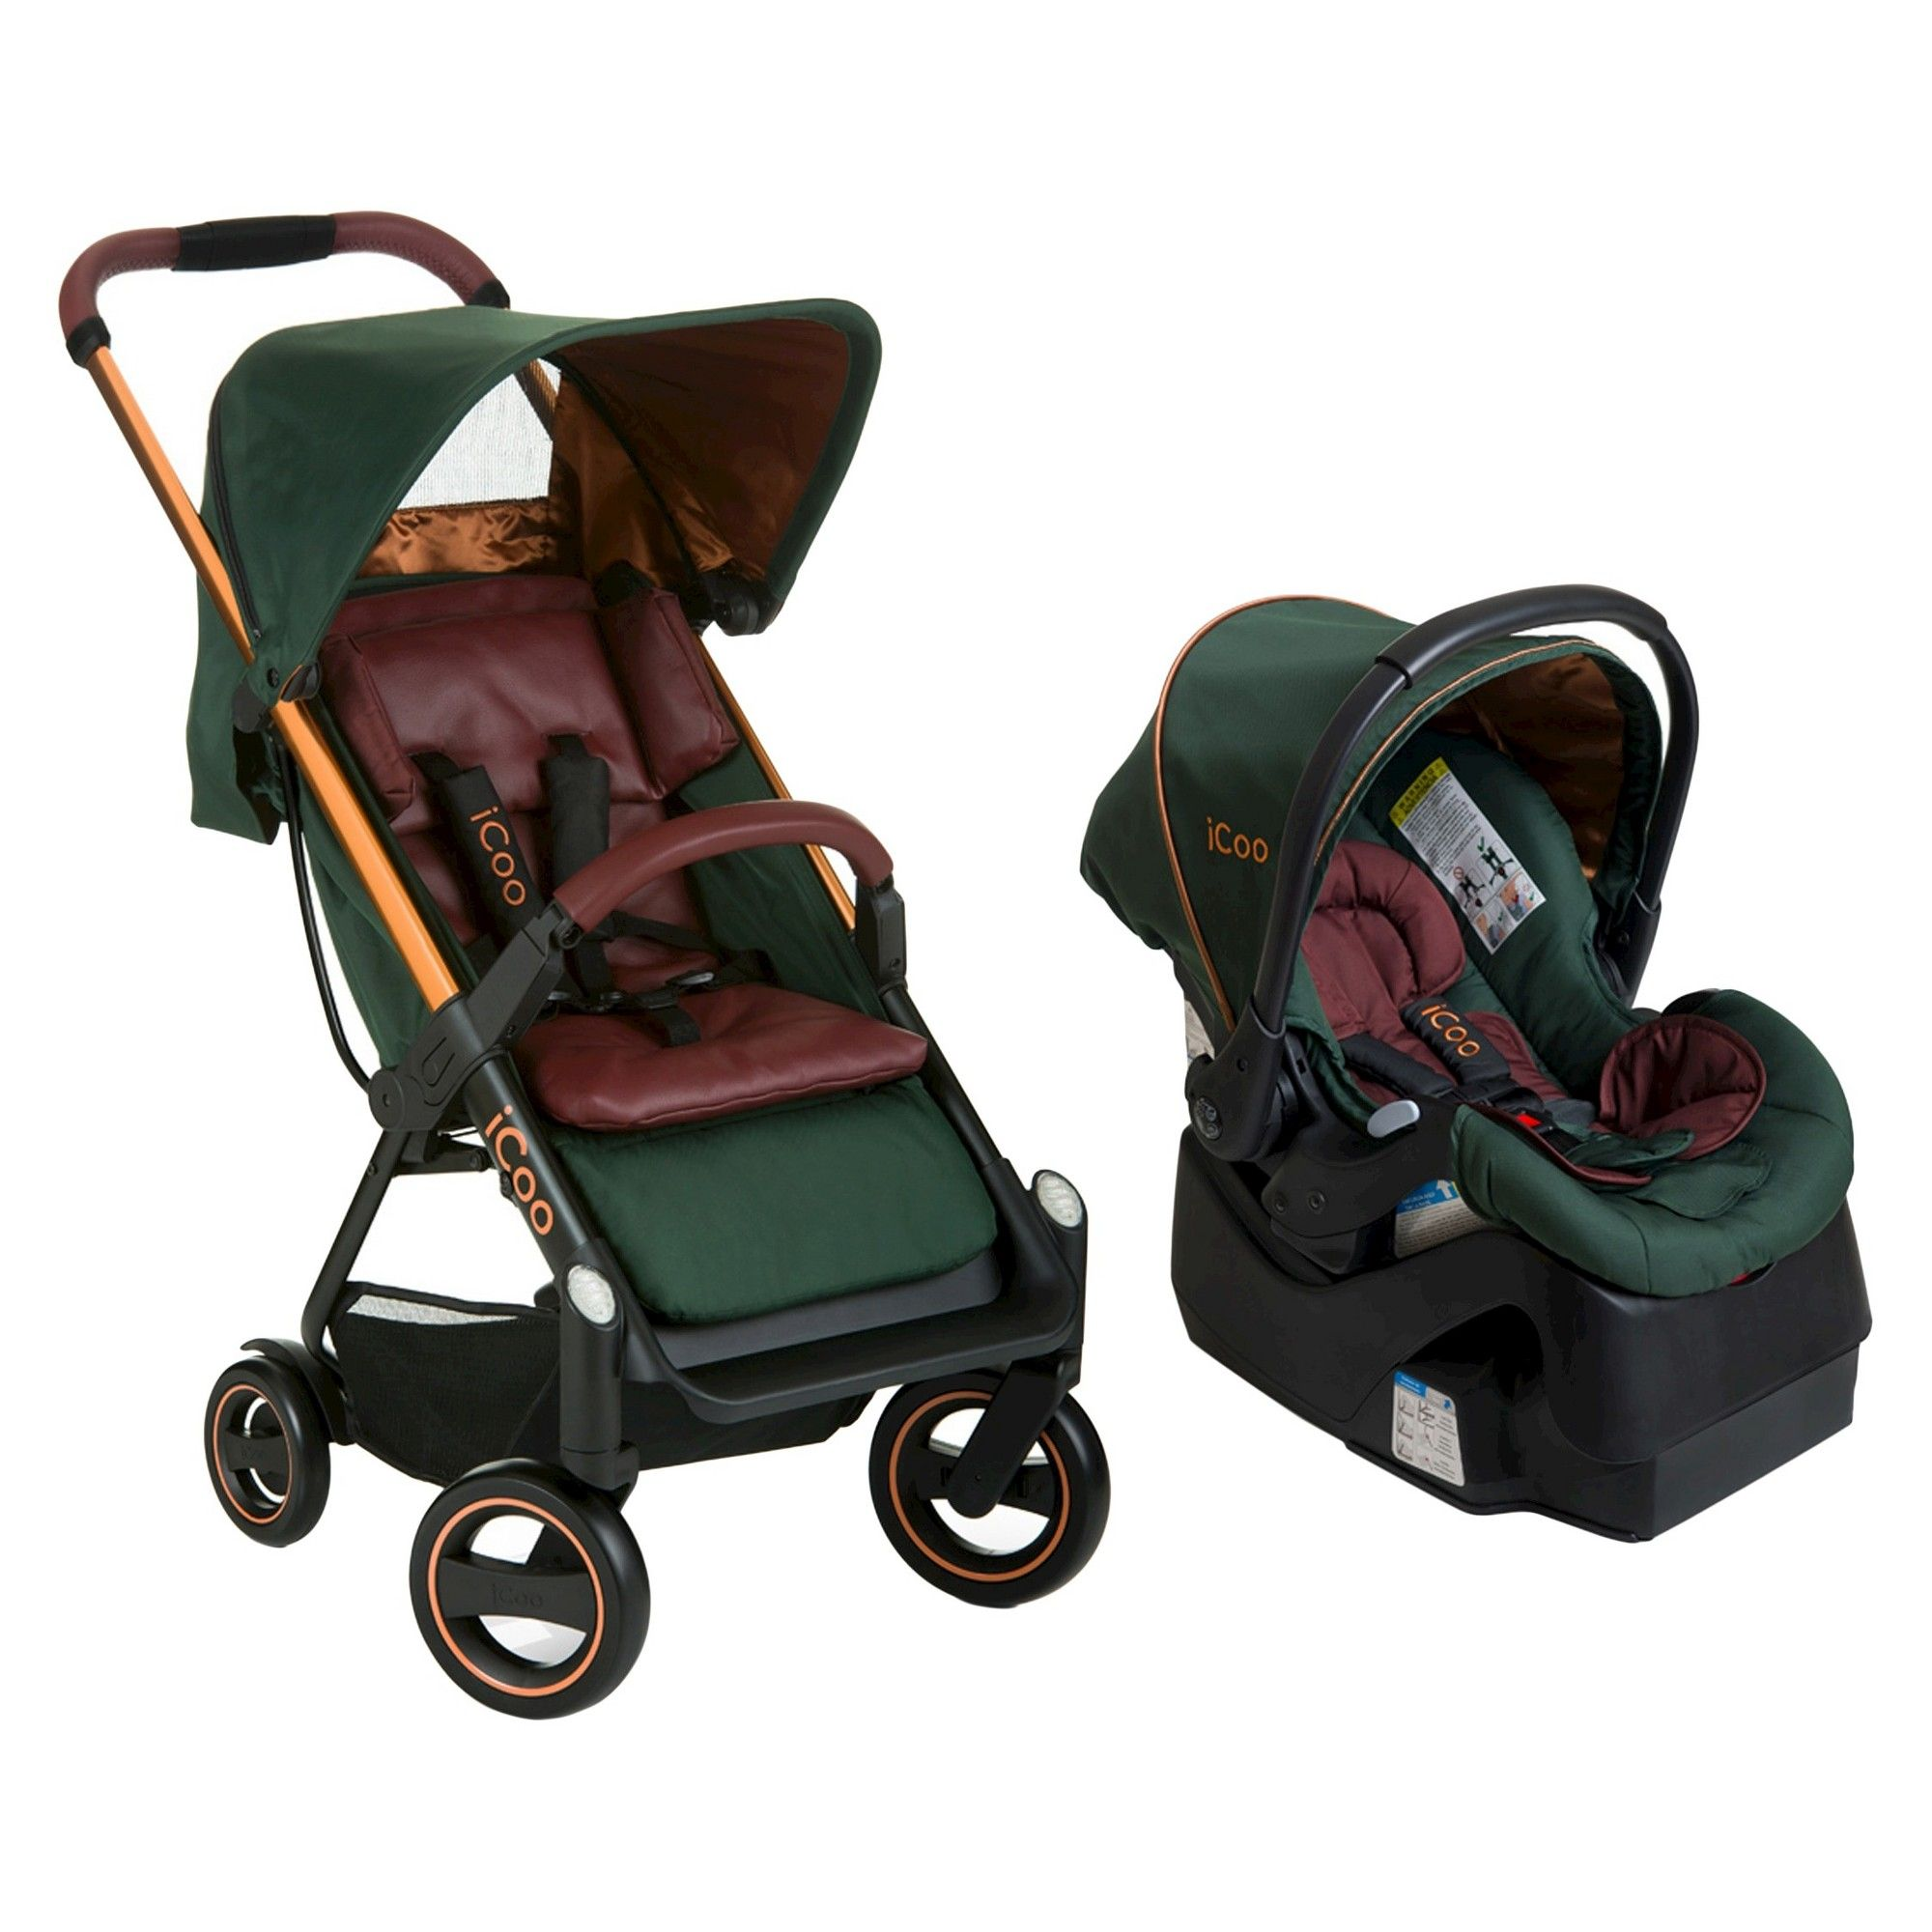 Maxi-cosi Adorra Travel System - Graphic Flower Icoo Acrobat Iguard 35 Infant Seat Copper Green Products